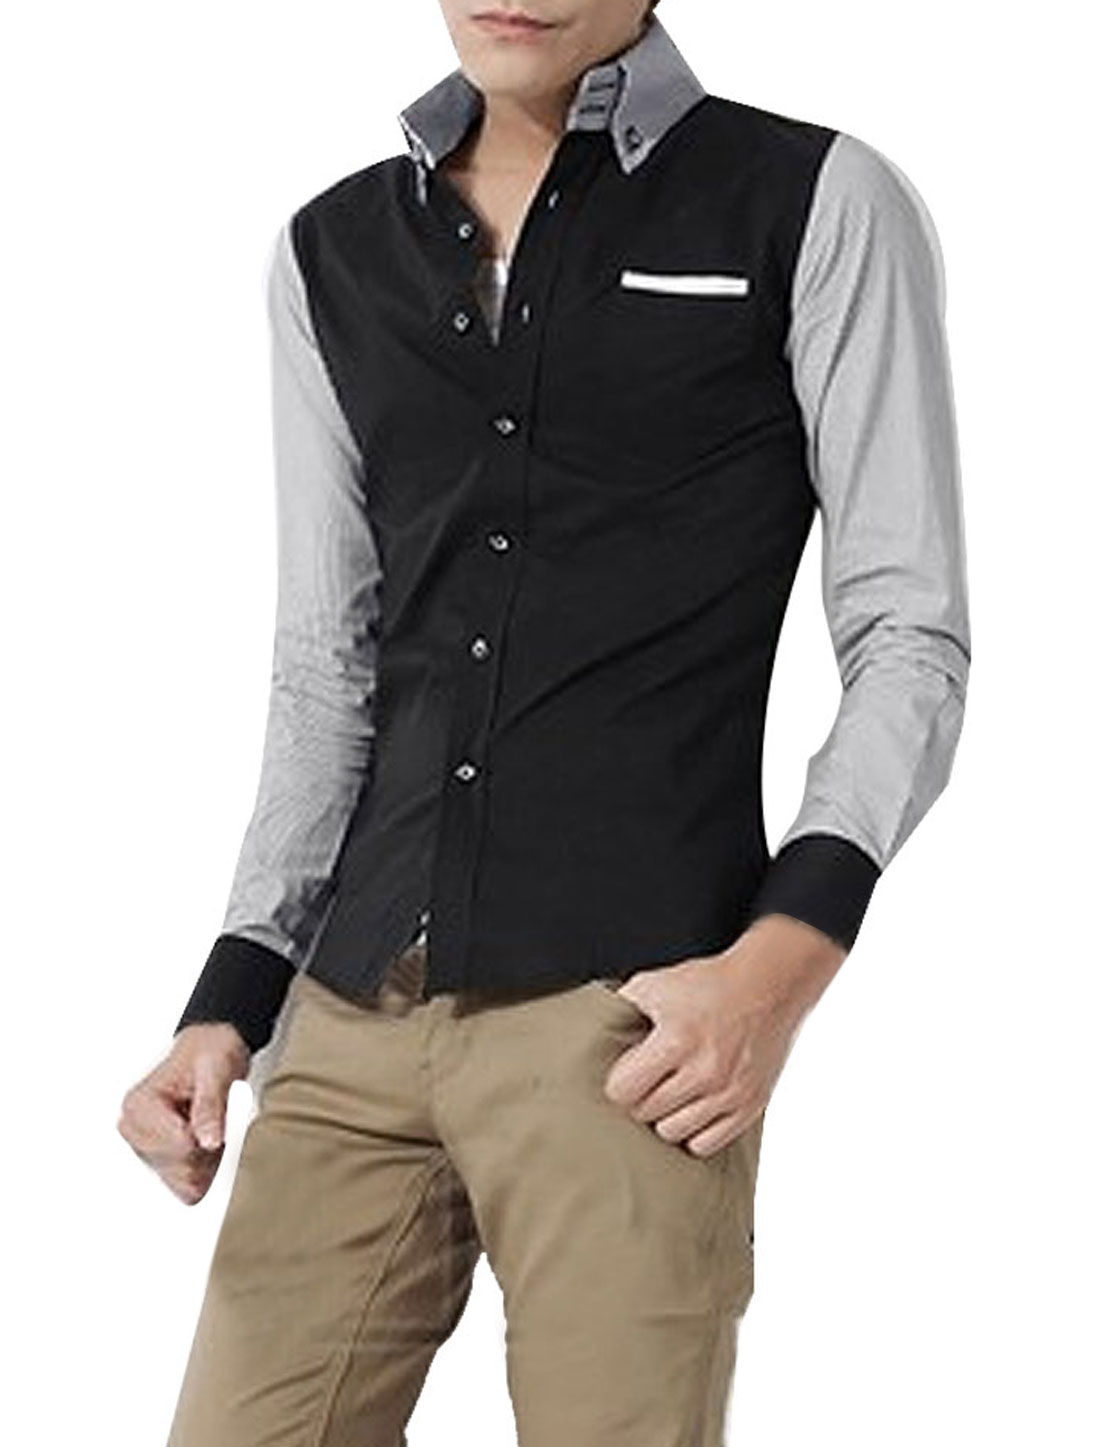 Men Stylish Contrast Color Stripes Pattern Black Casual Shirt S